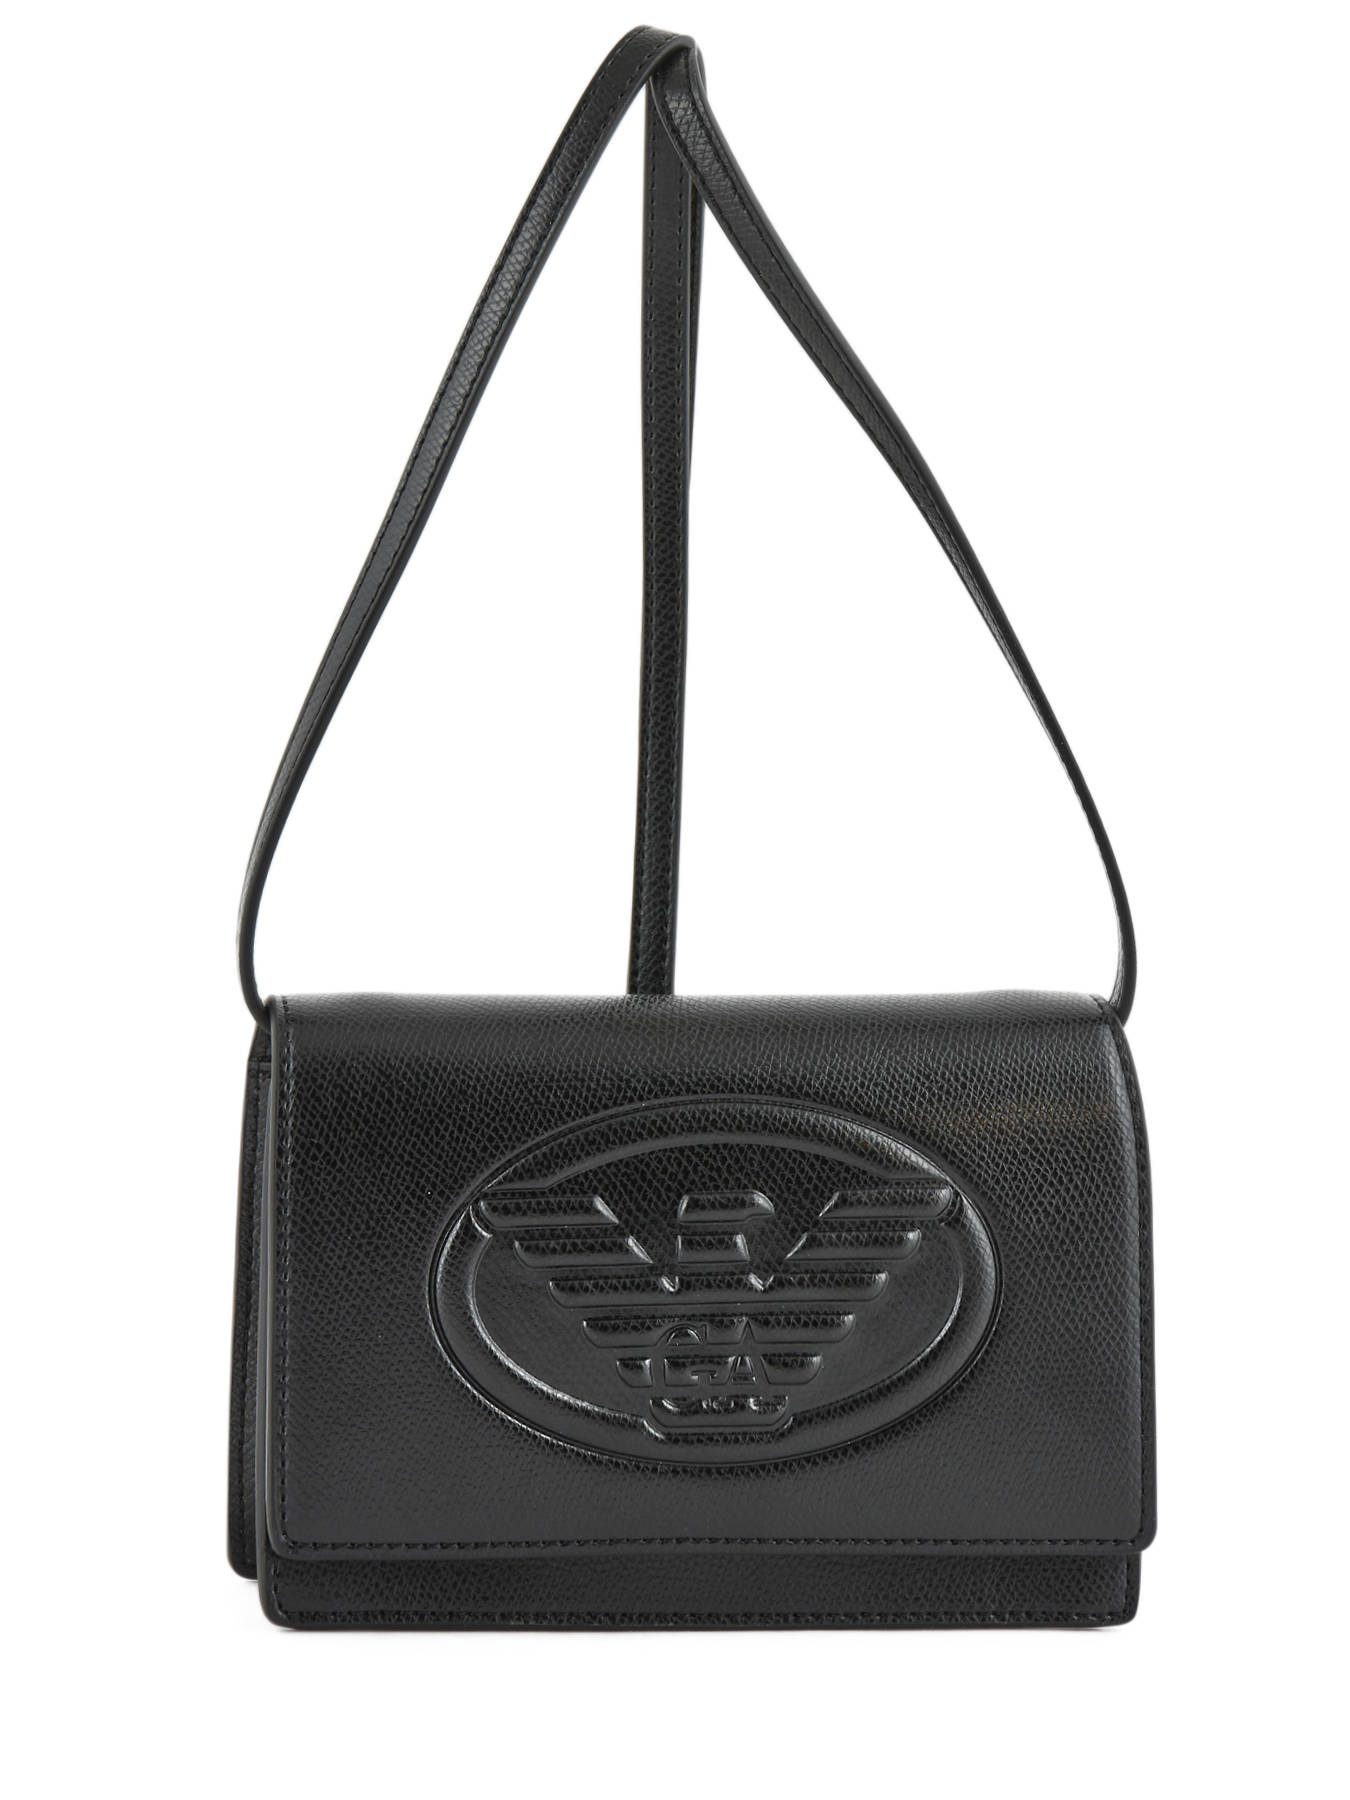 eabbd2488e67 ... Crossbody Bag Frida Eagle Emporio armani Black frida eagle 18Y3B086 ...